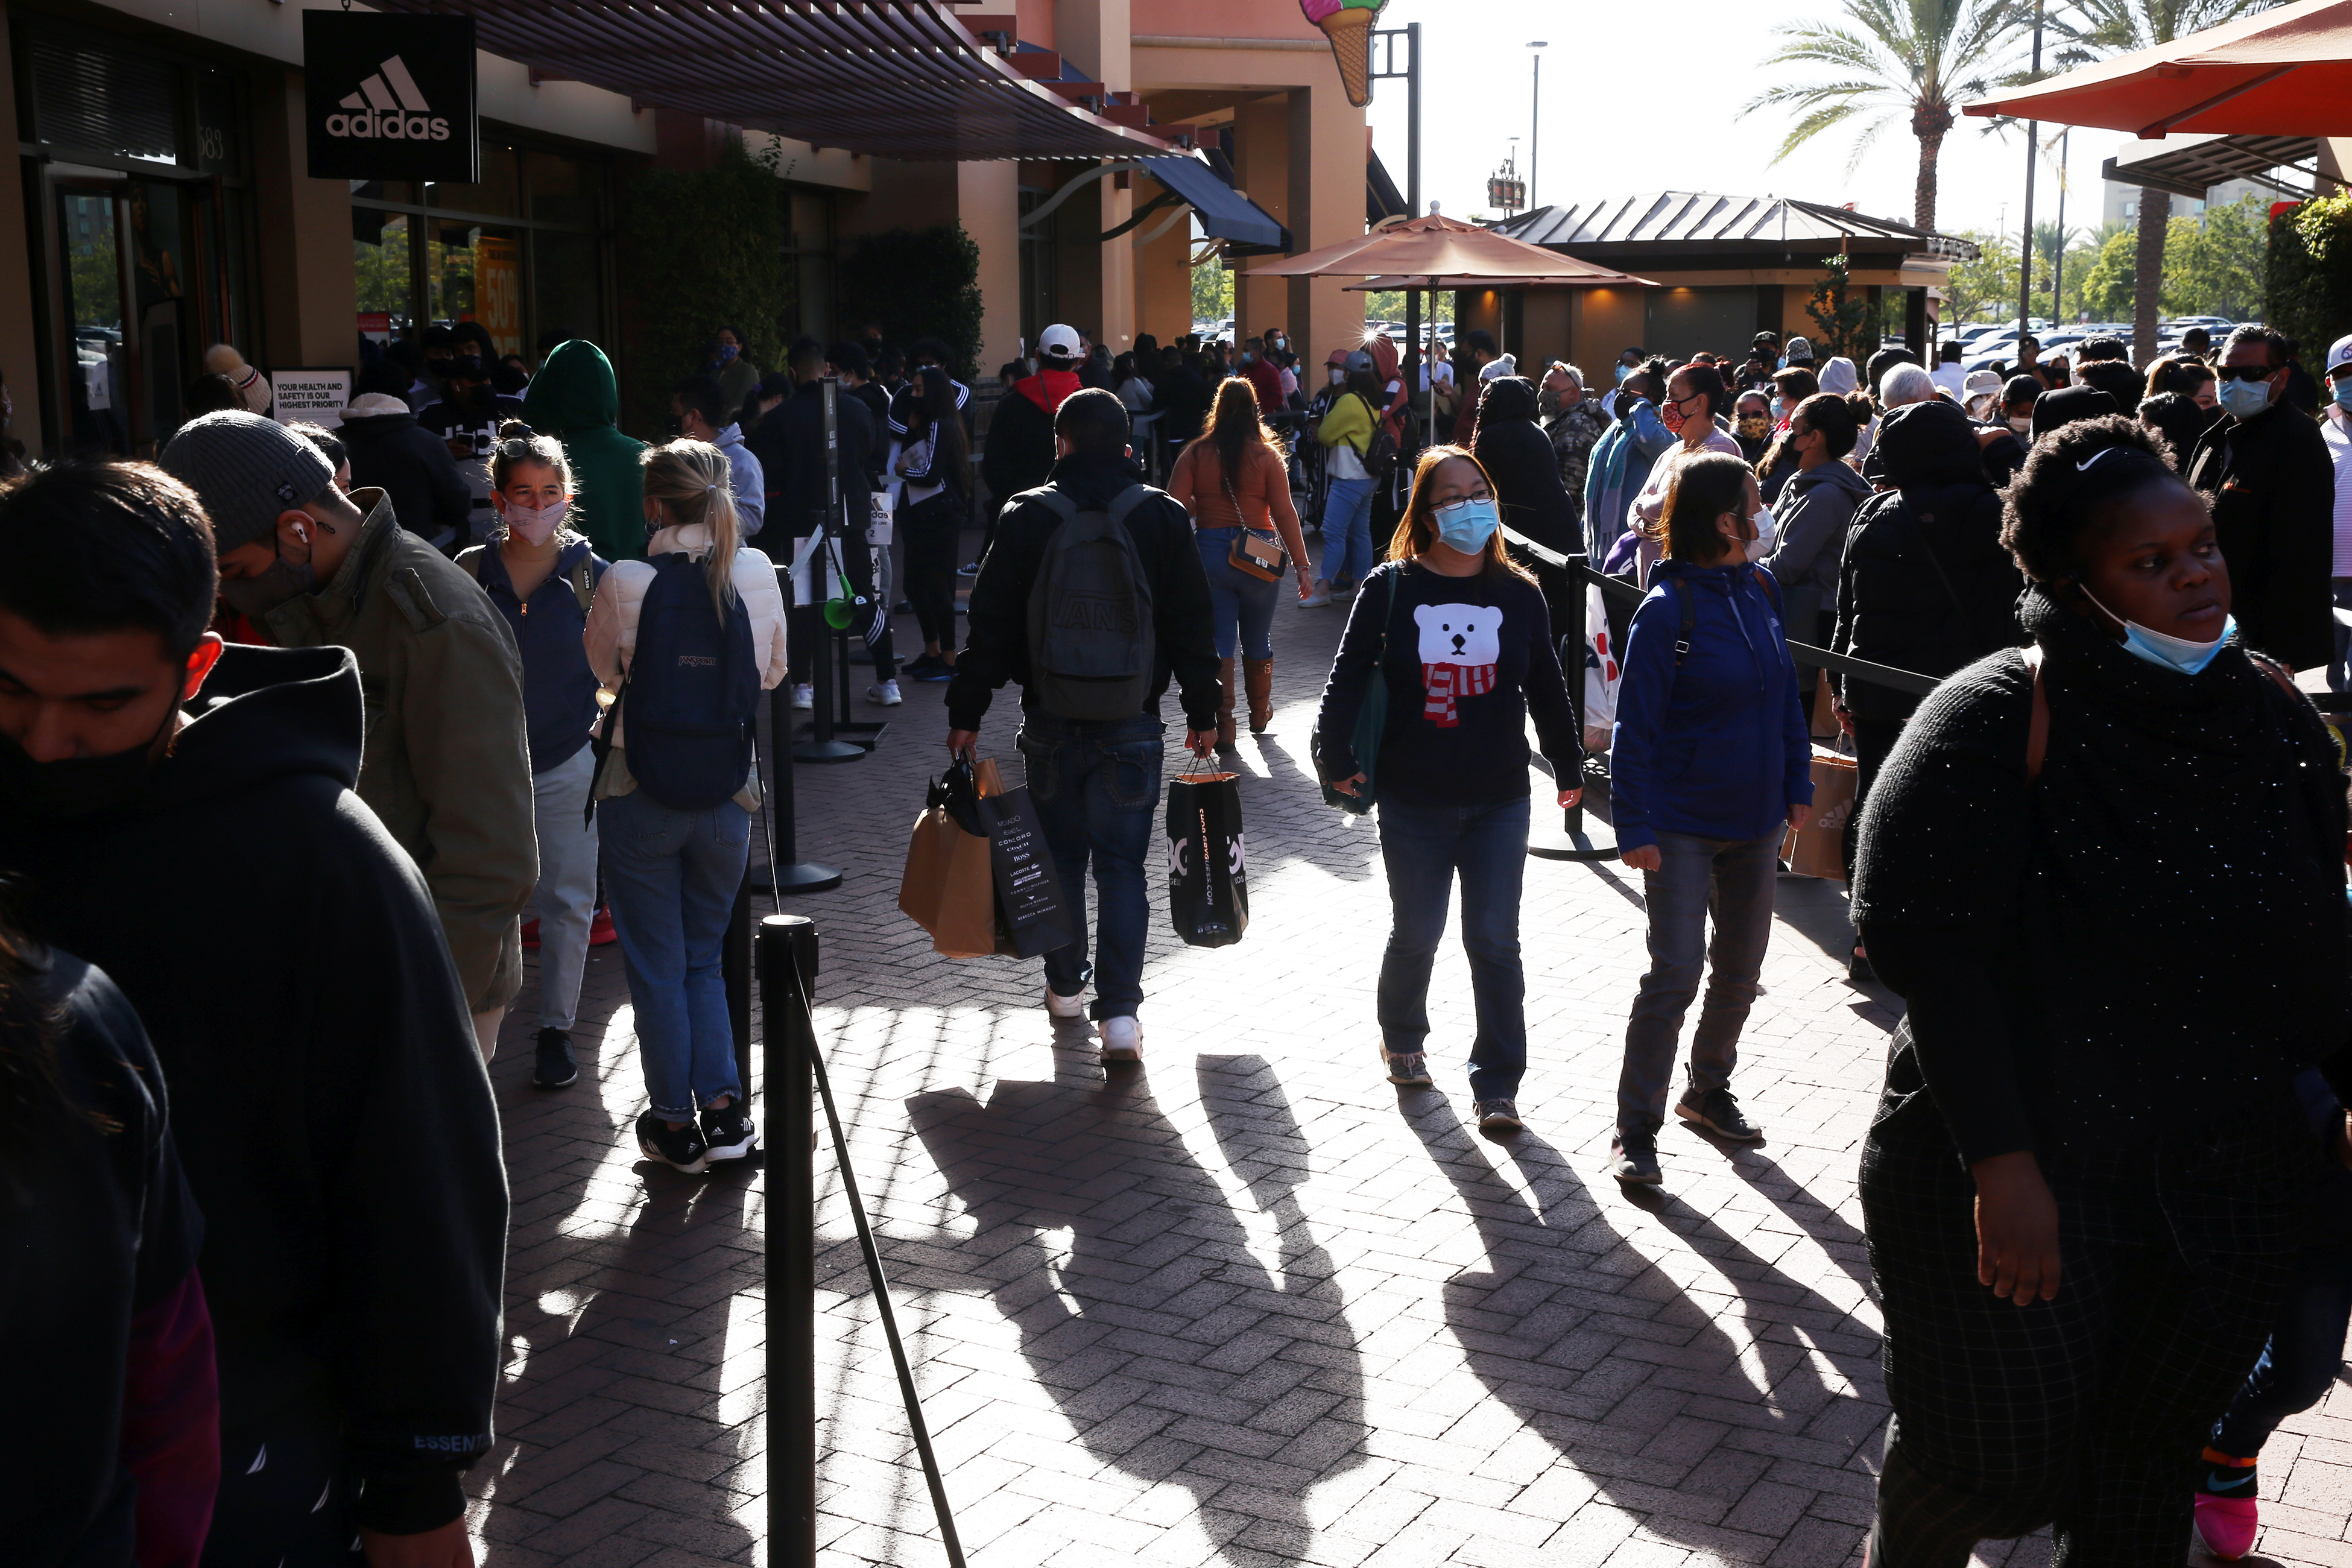 People shop at the Citadel Outlets in Commerce on Friday, Nov. 27, 2020 in Los Angeles, CA.